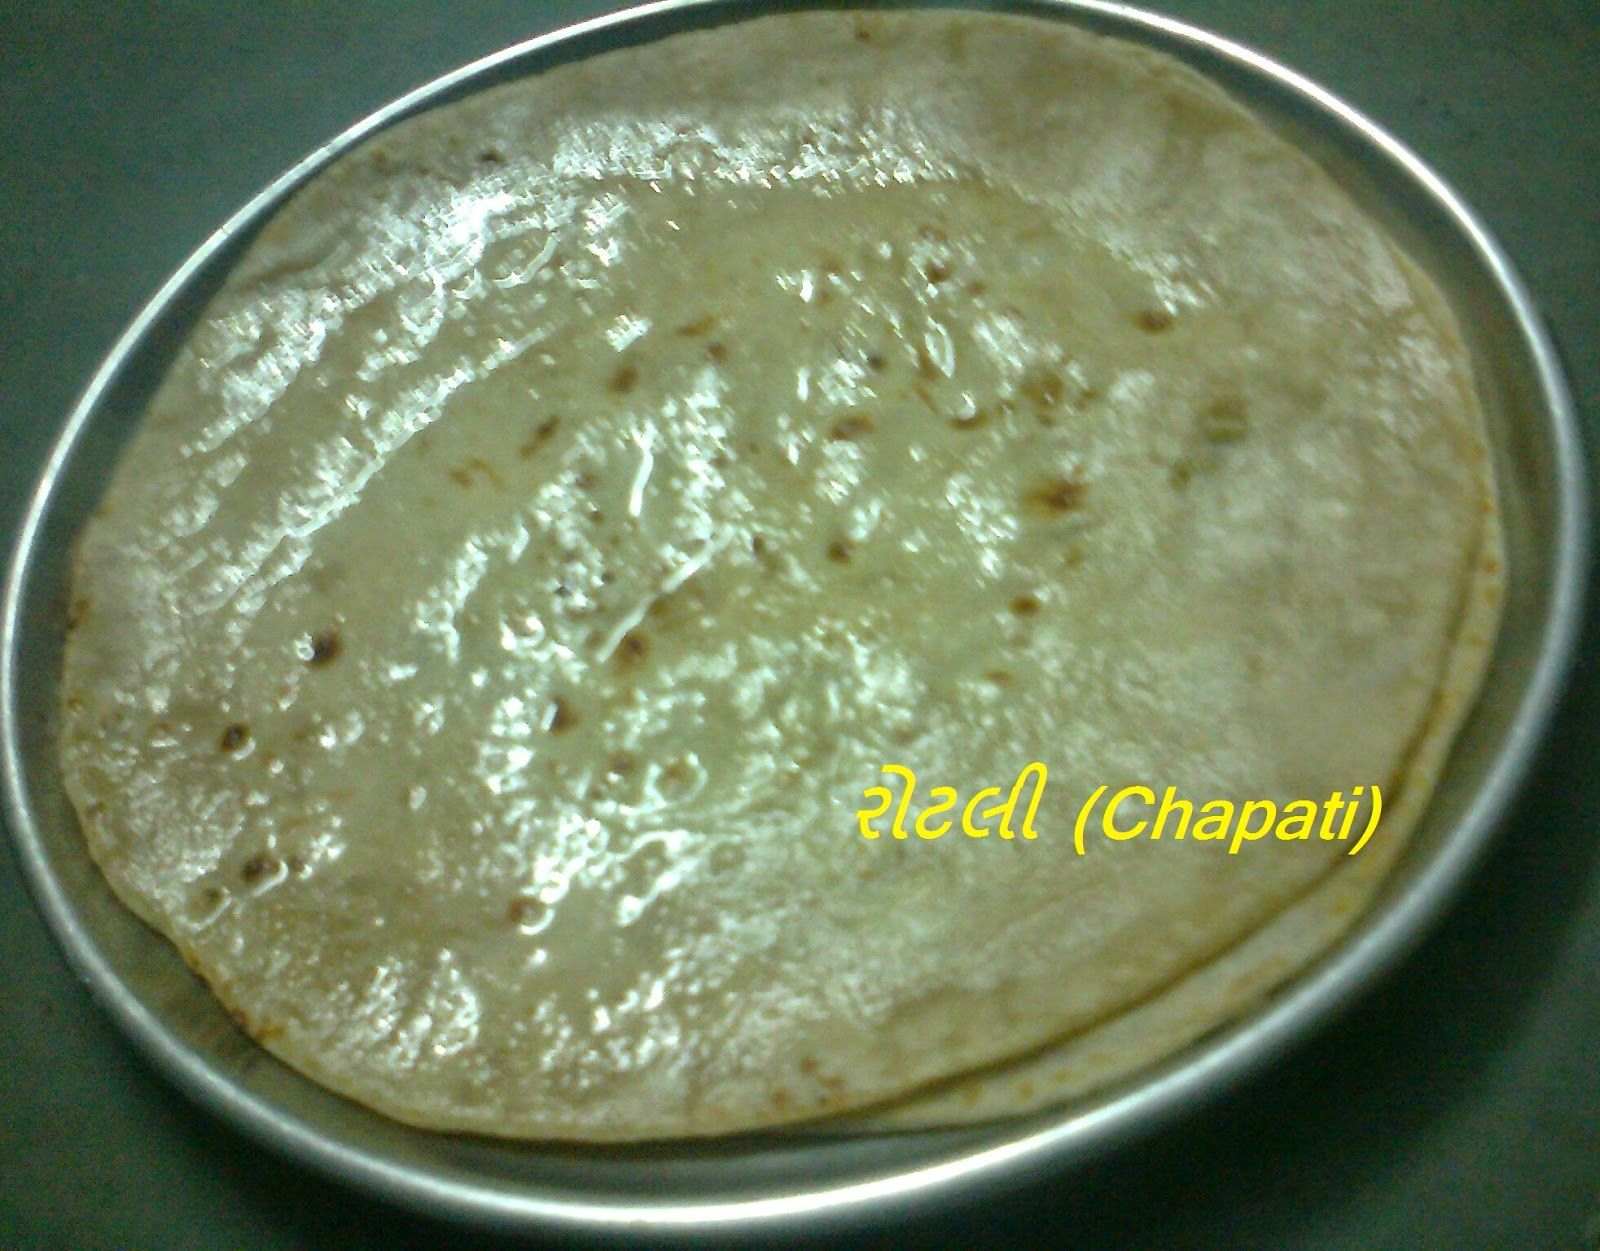 Wheat flour rotli recipe in gujarati language by tasty gujarati food wheat flour rotli recipe in gujarati language by tasty gujarati food recipes blog read recipe forumfinder Choice Image